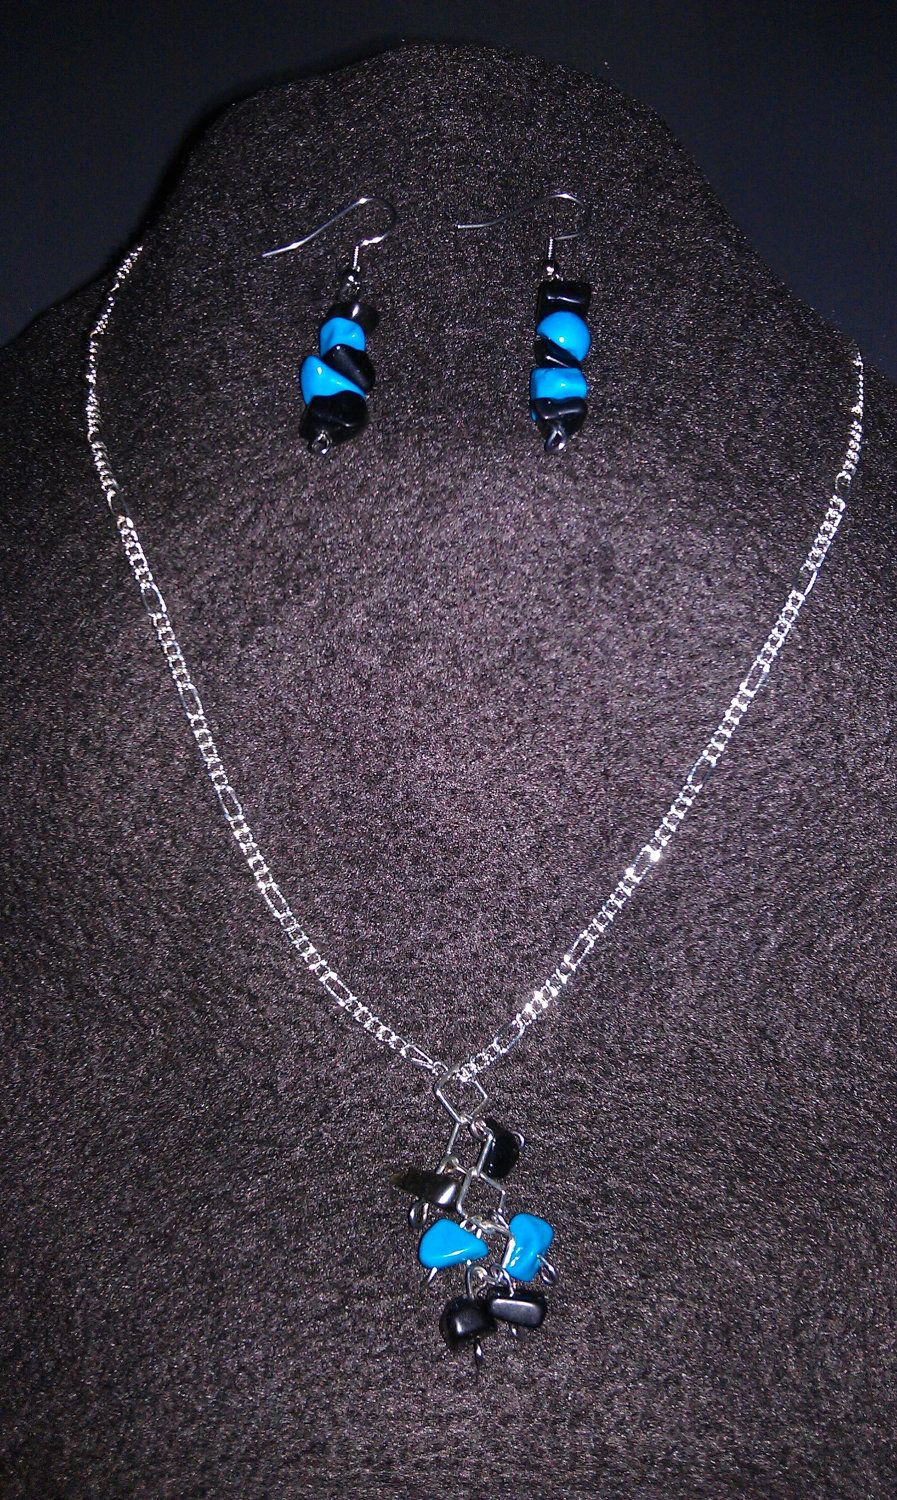 piece set that includes a silver color necklace with a teal and